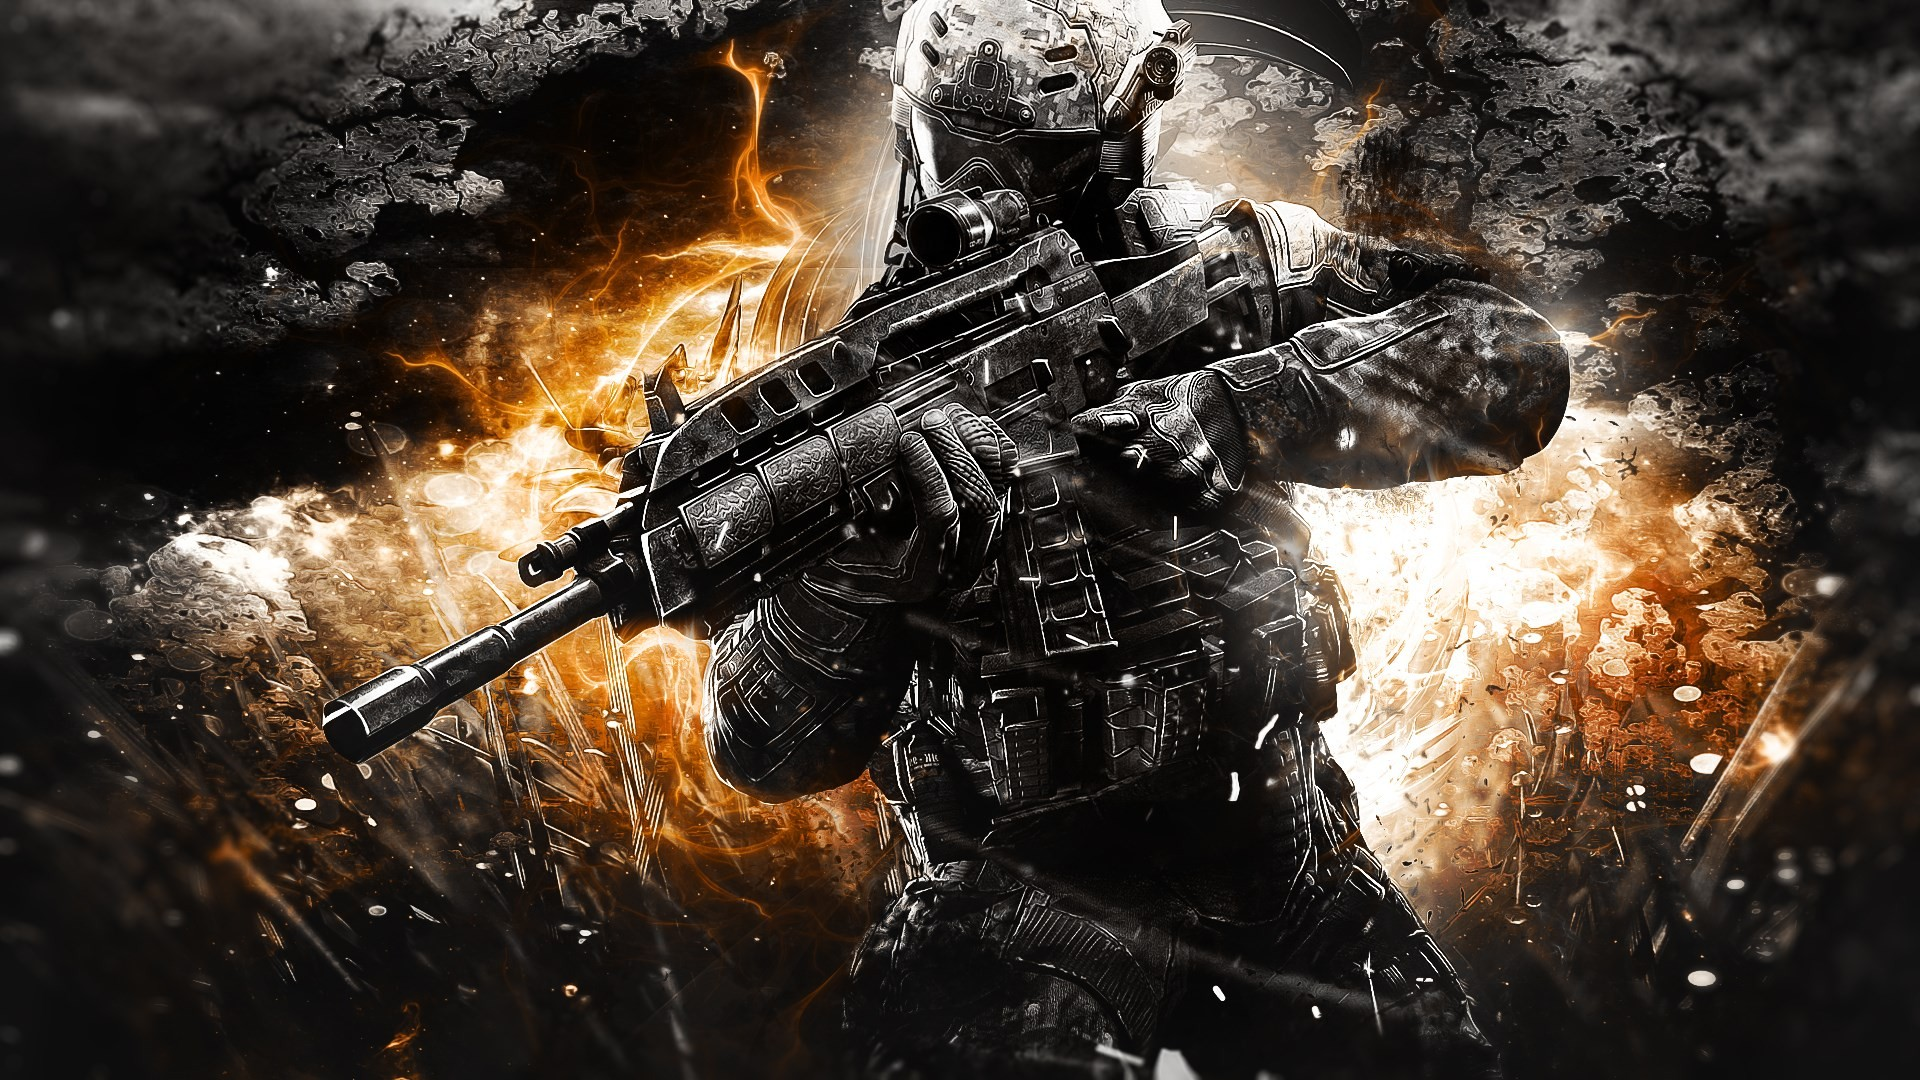 Call-Of-Duty-wallpaper-wp3603845